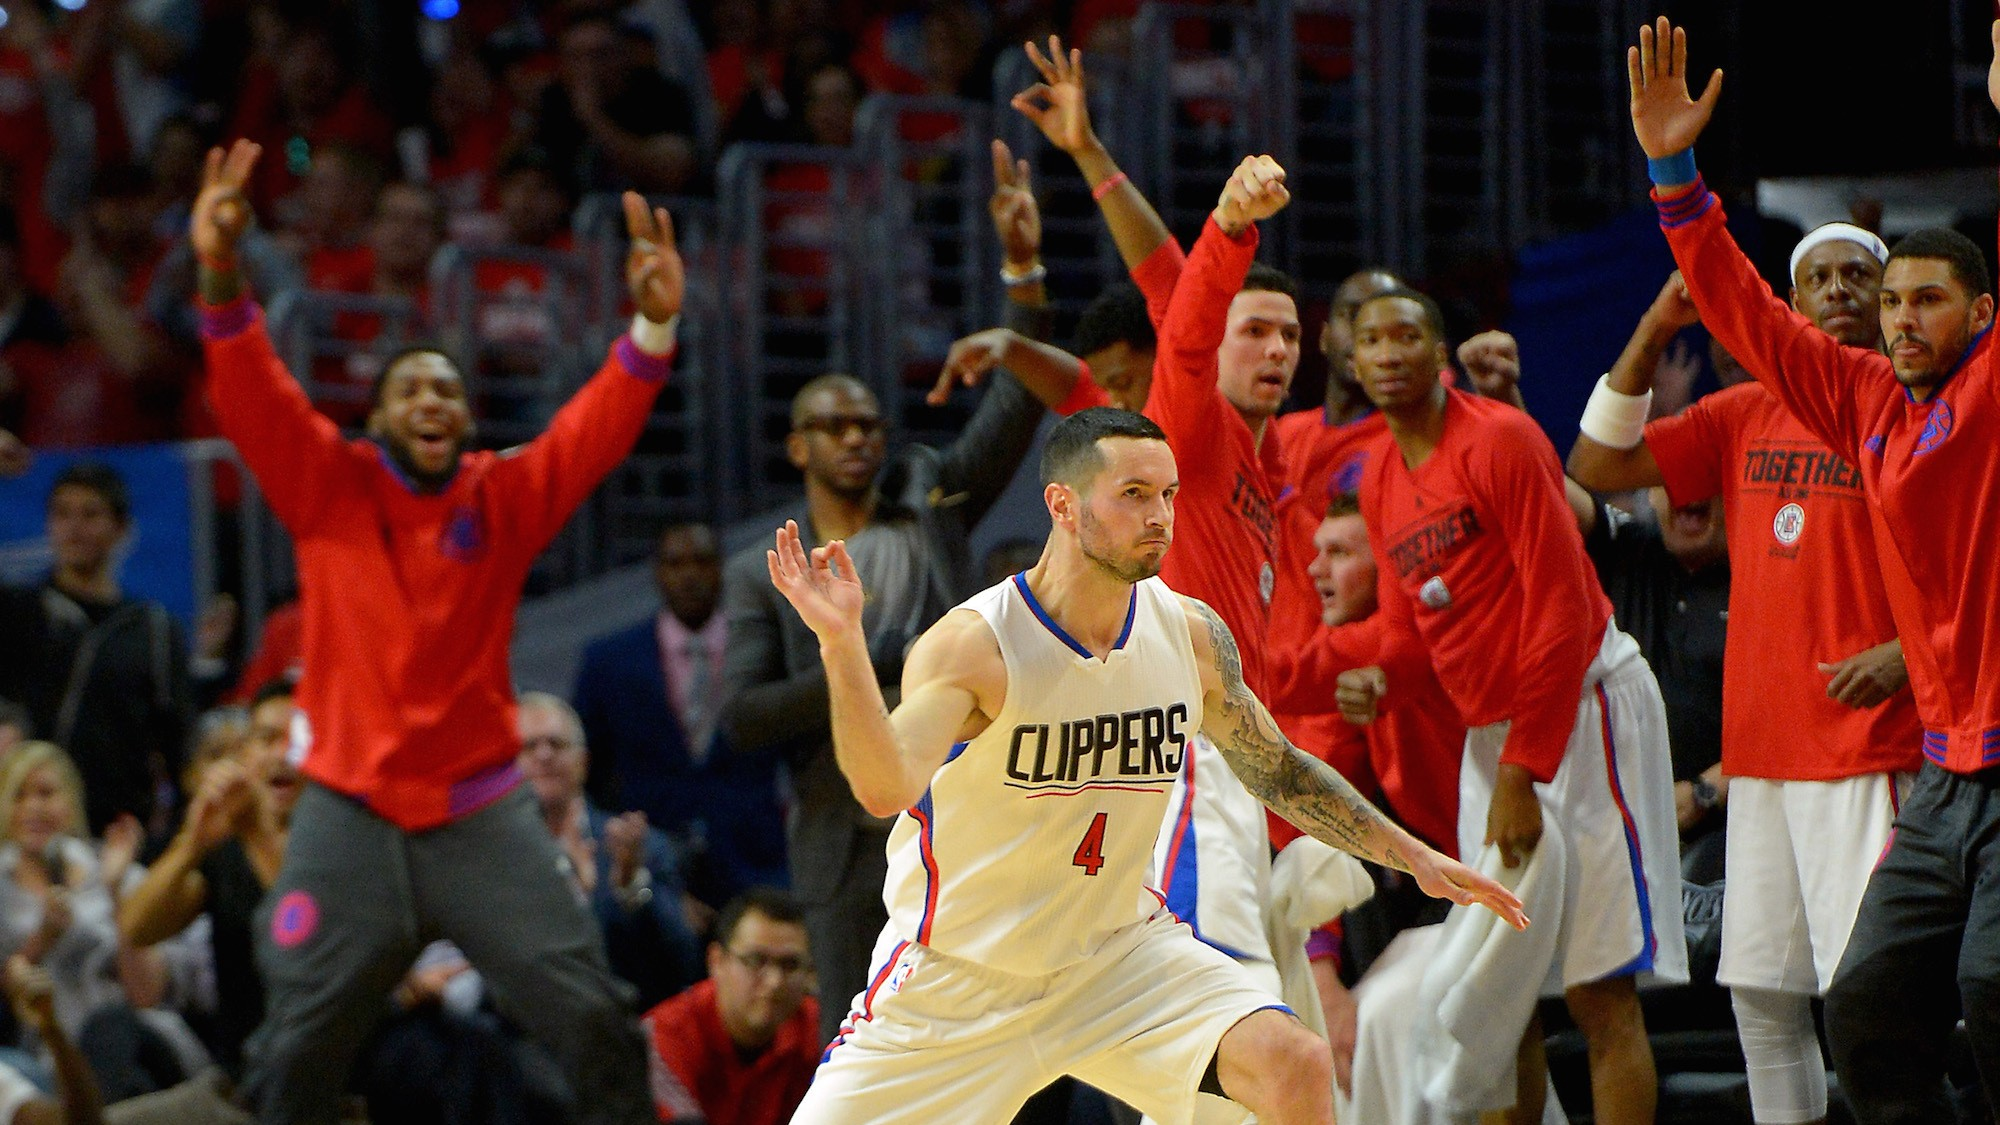 Blake Griffin and Chris Paul Are Down, But the Clippers Aren't Out Yet